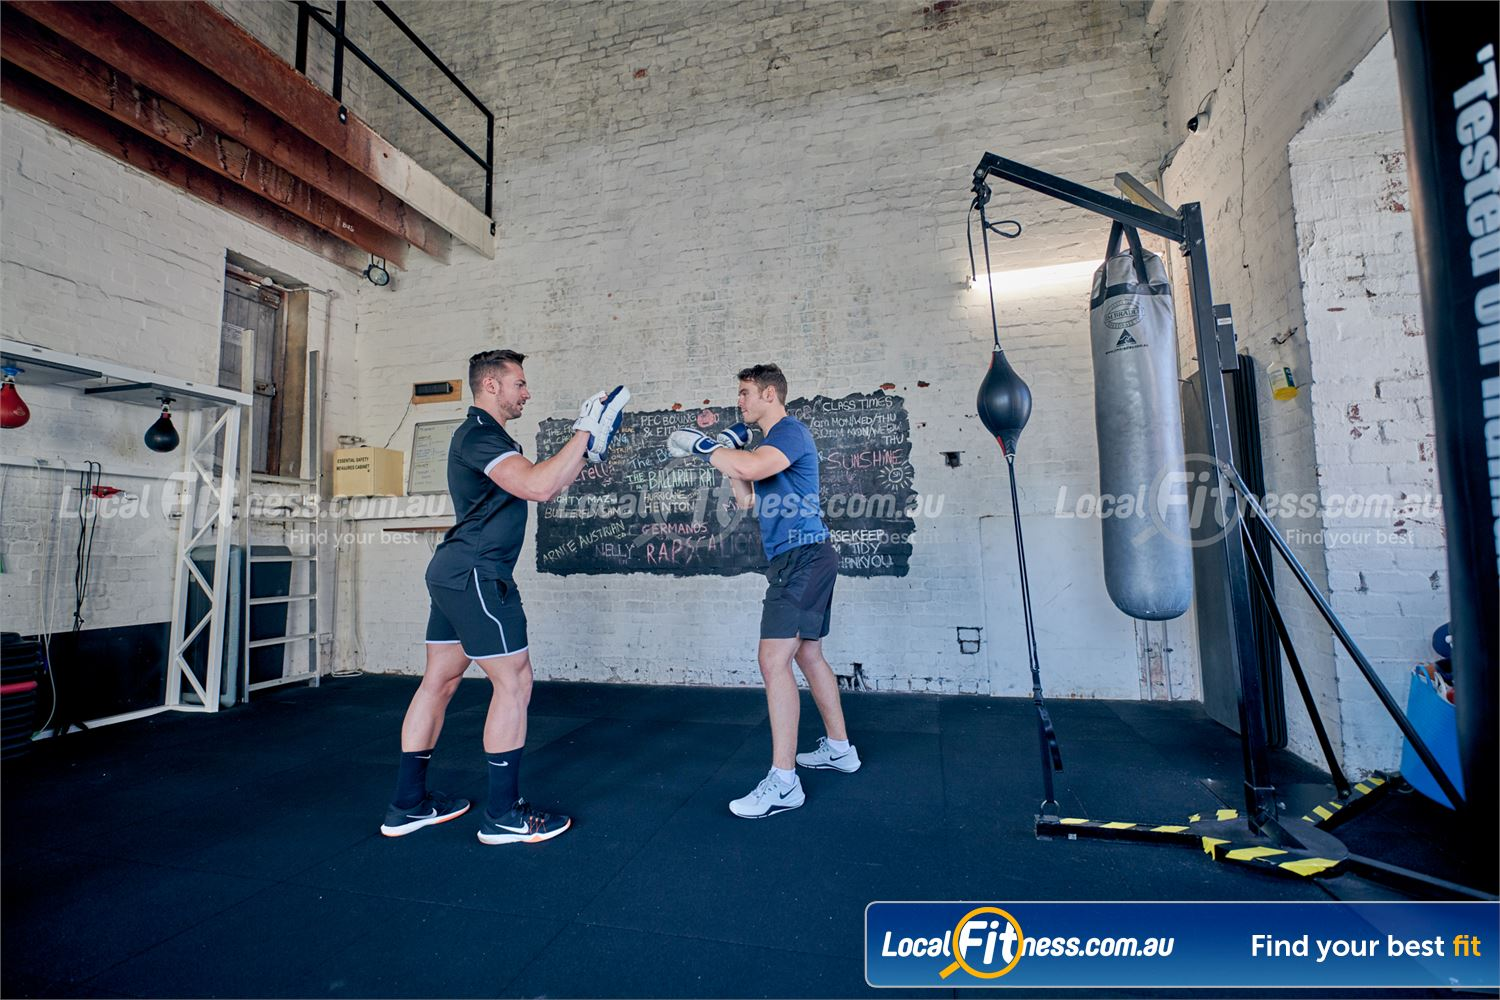 Goodlife Health Clubs Prahran Our boxing instructors will get your heart rate up with boxing classes.